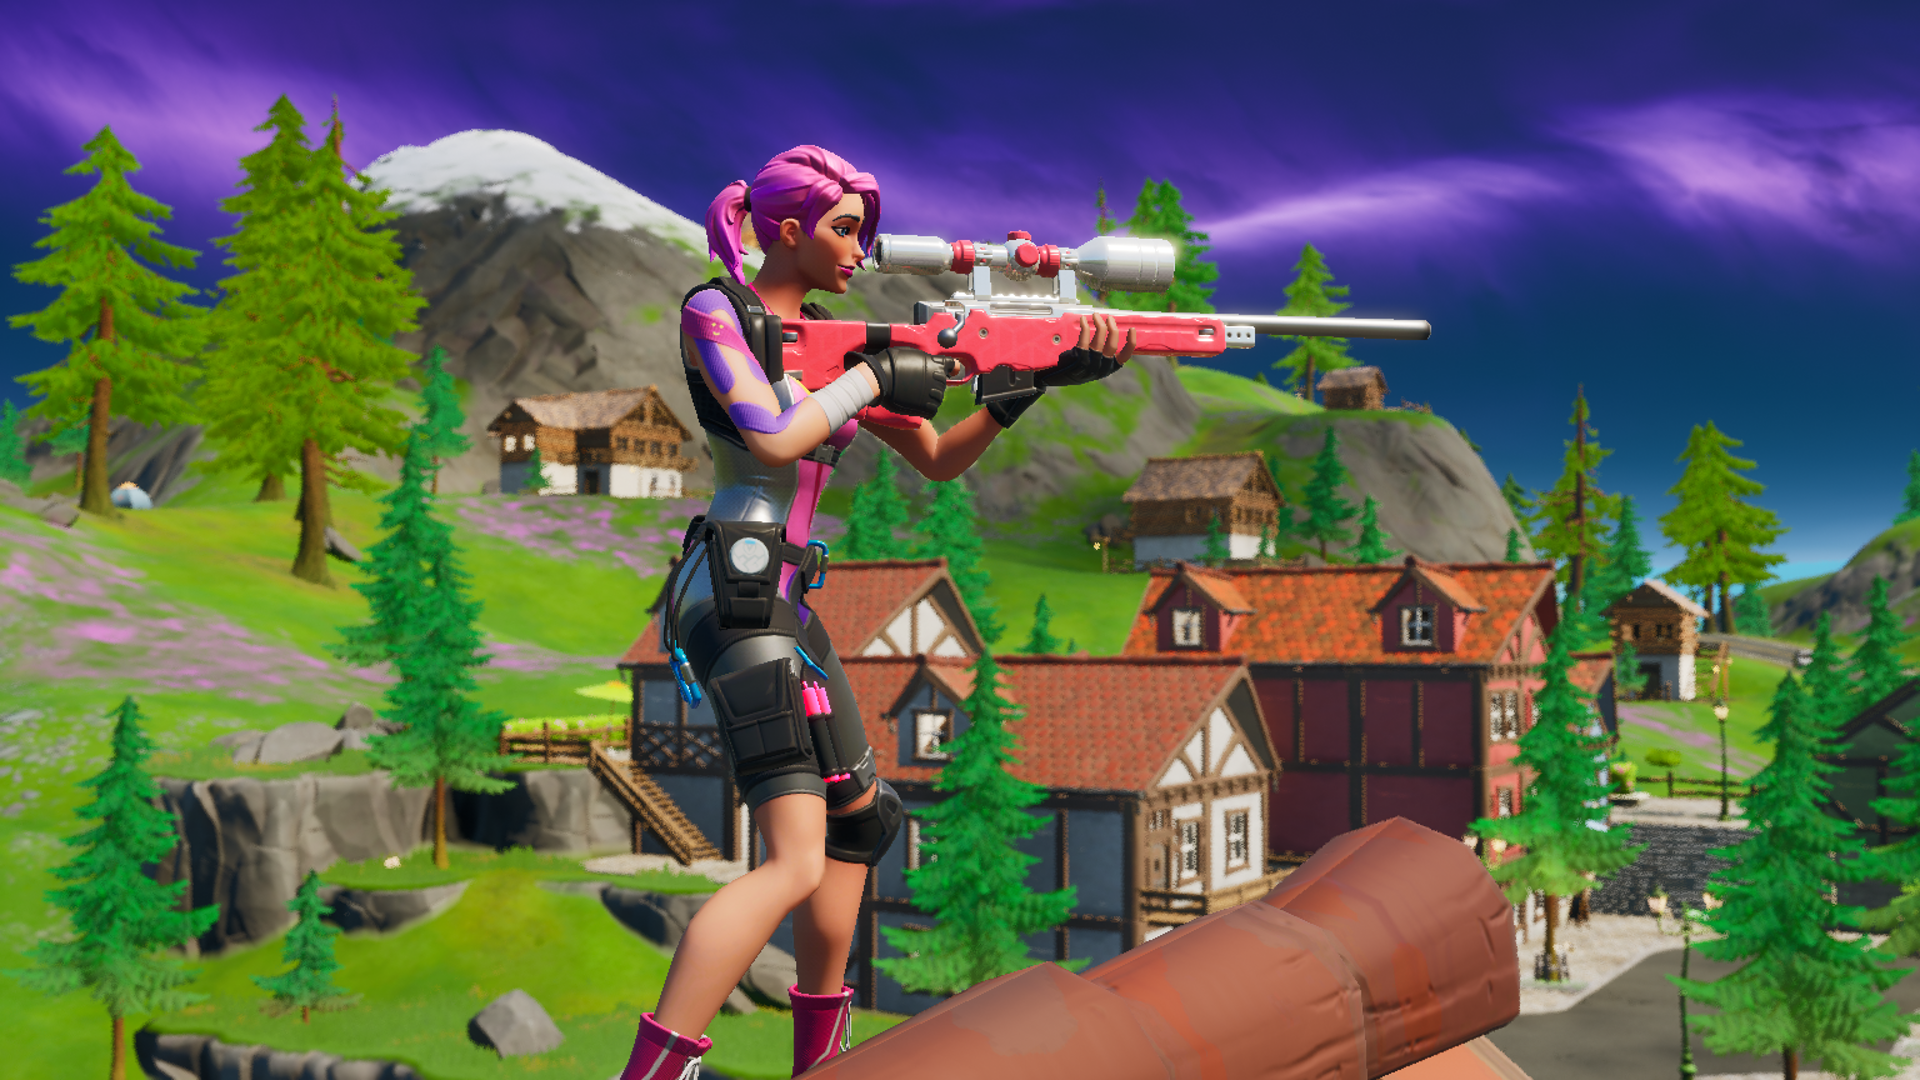 A Fortnite player using the Journey skin from Chapter 2 aims a Sniper Rifle